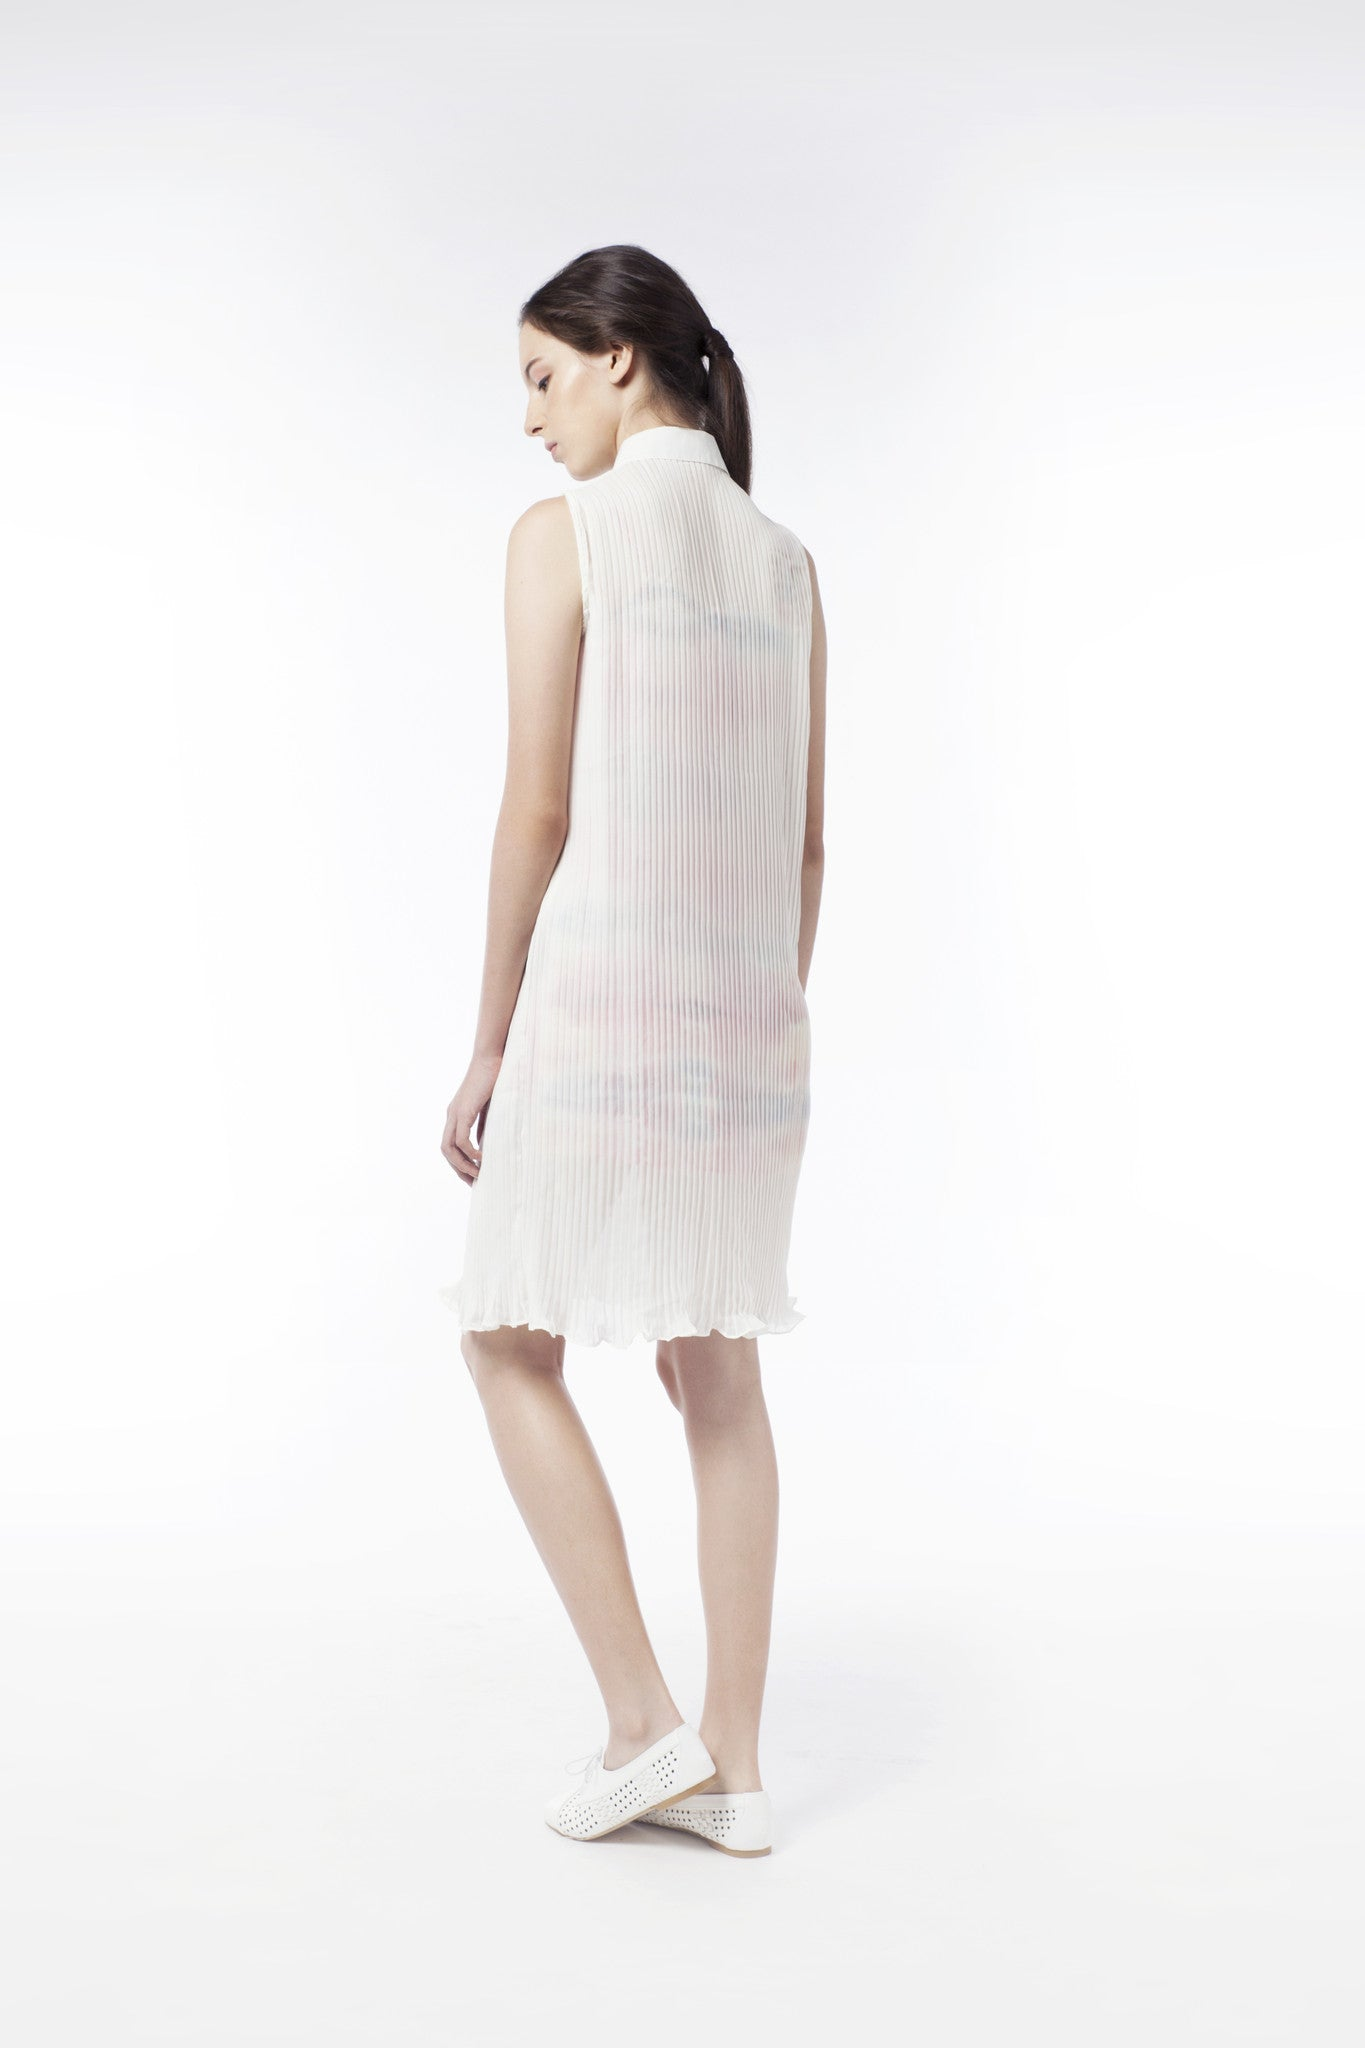 2 In 1 Mysterious Sheer Pleat Dress - GlanceZ   - 3